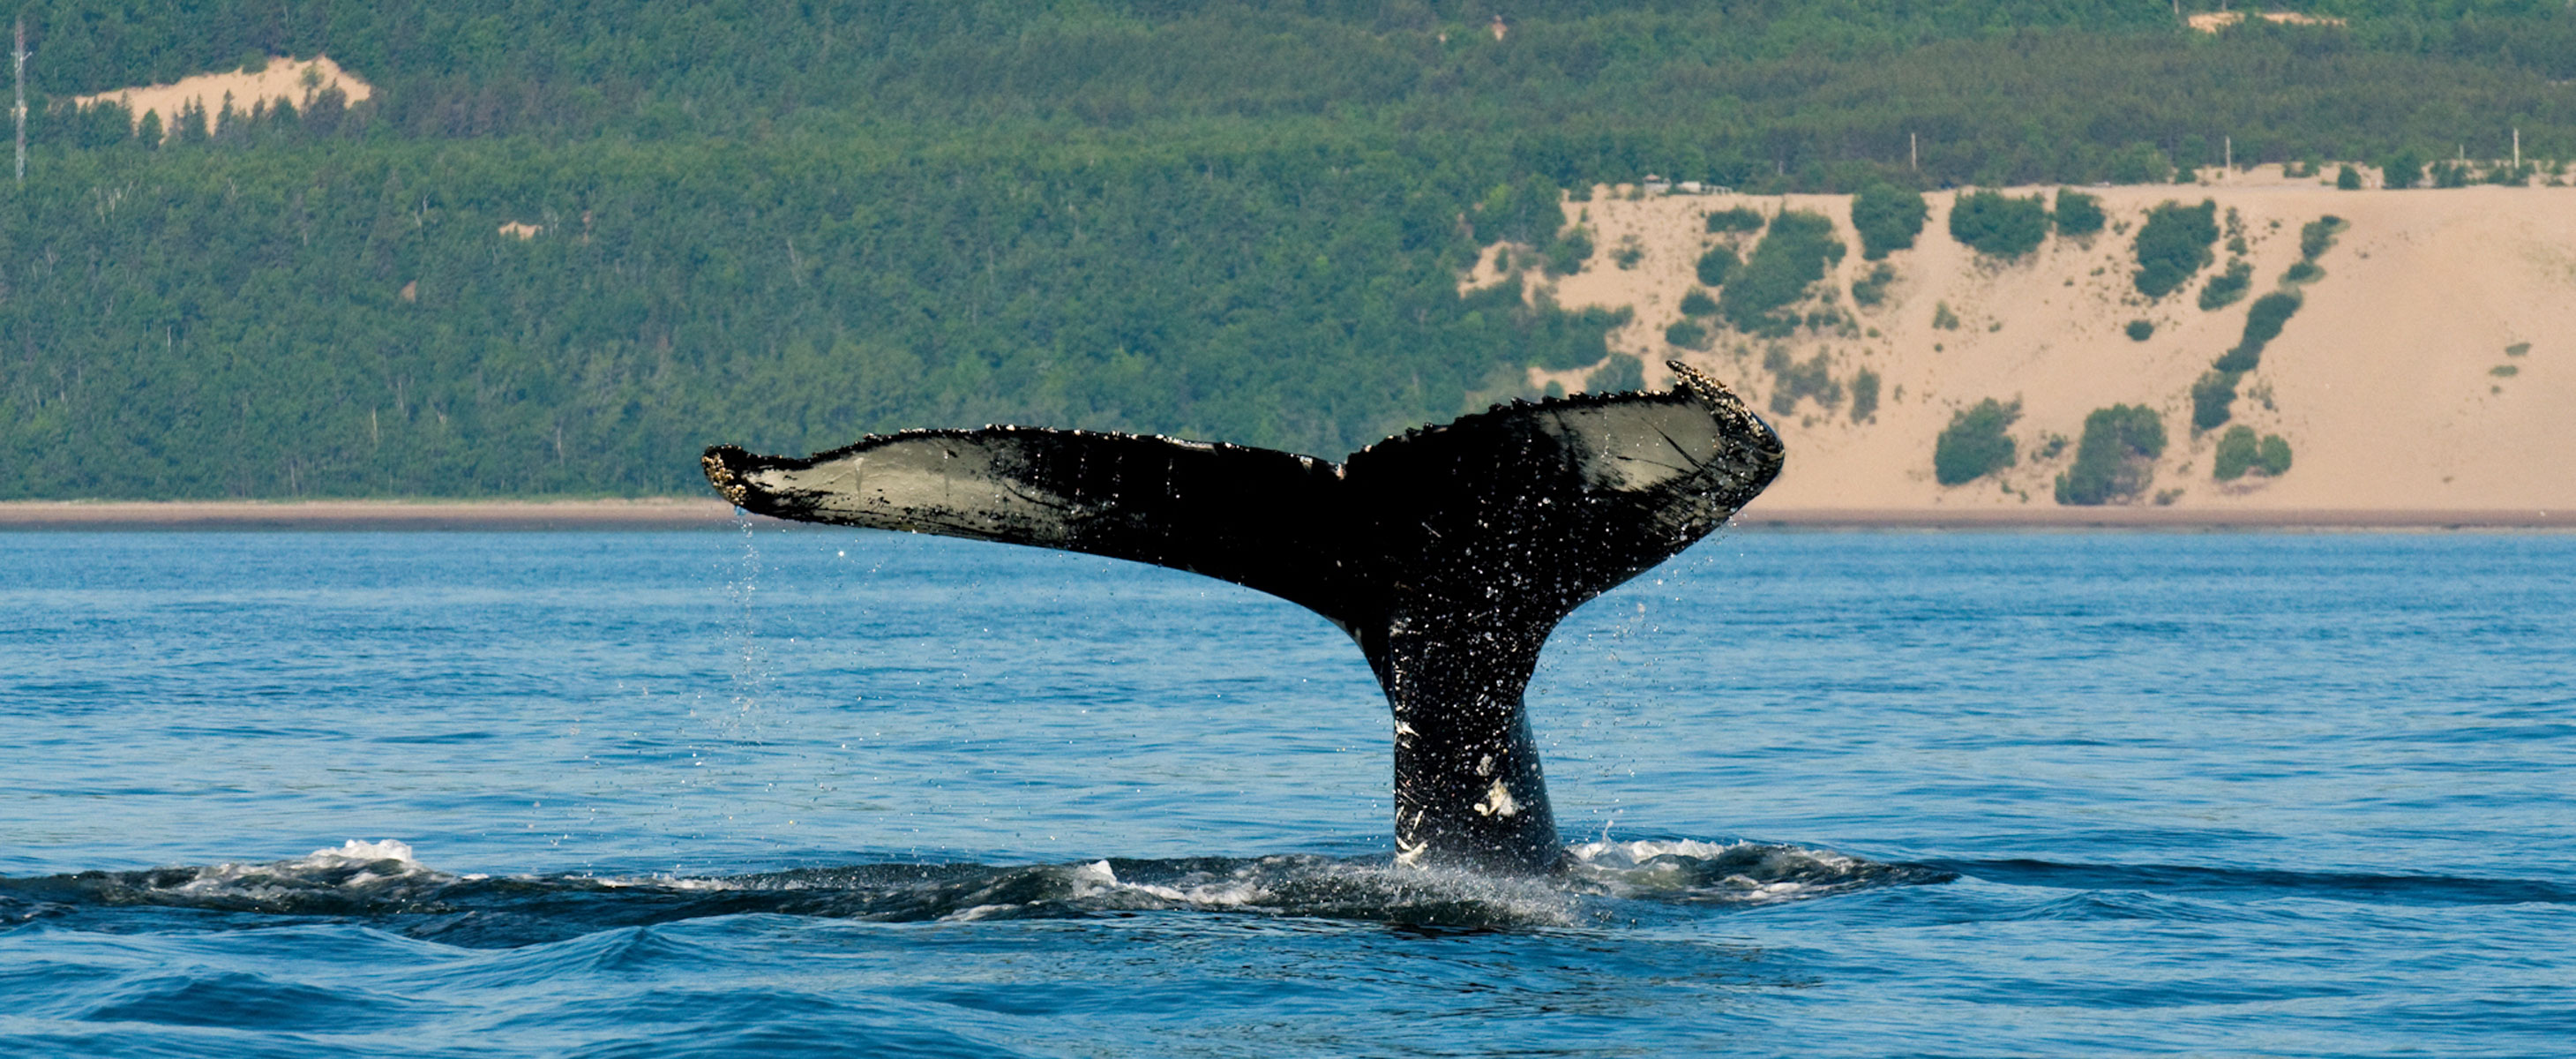 Whale-watching in Quebec's St. Lawrence River